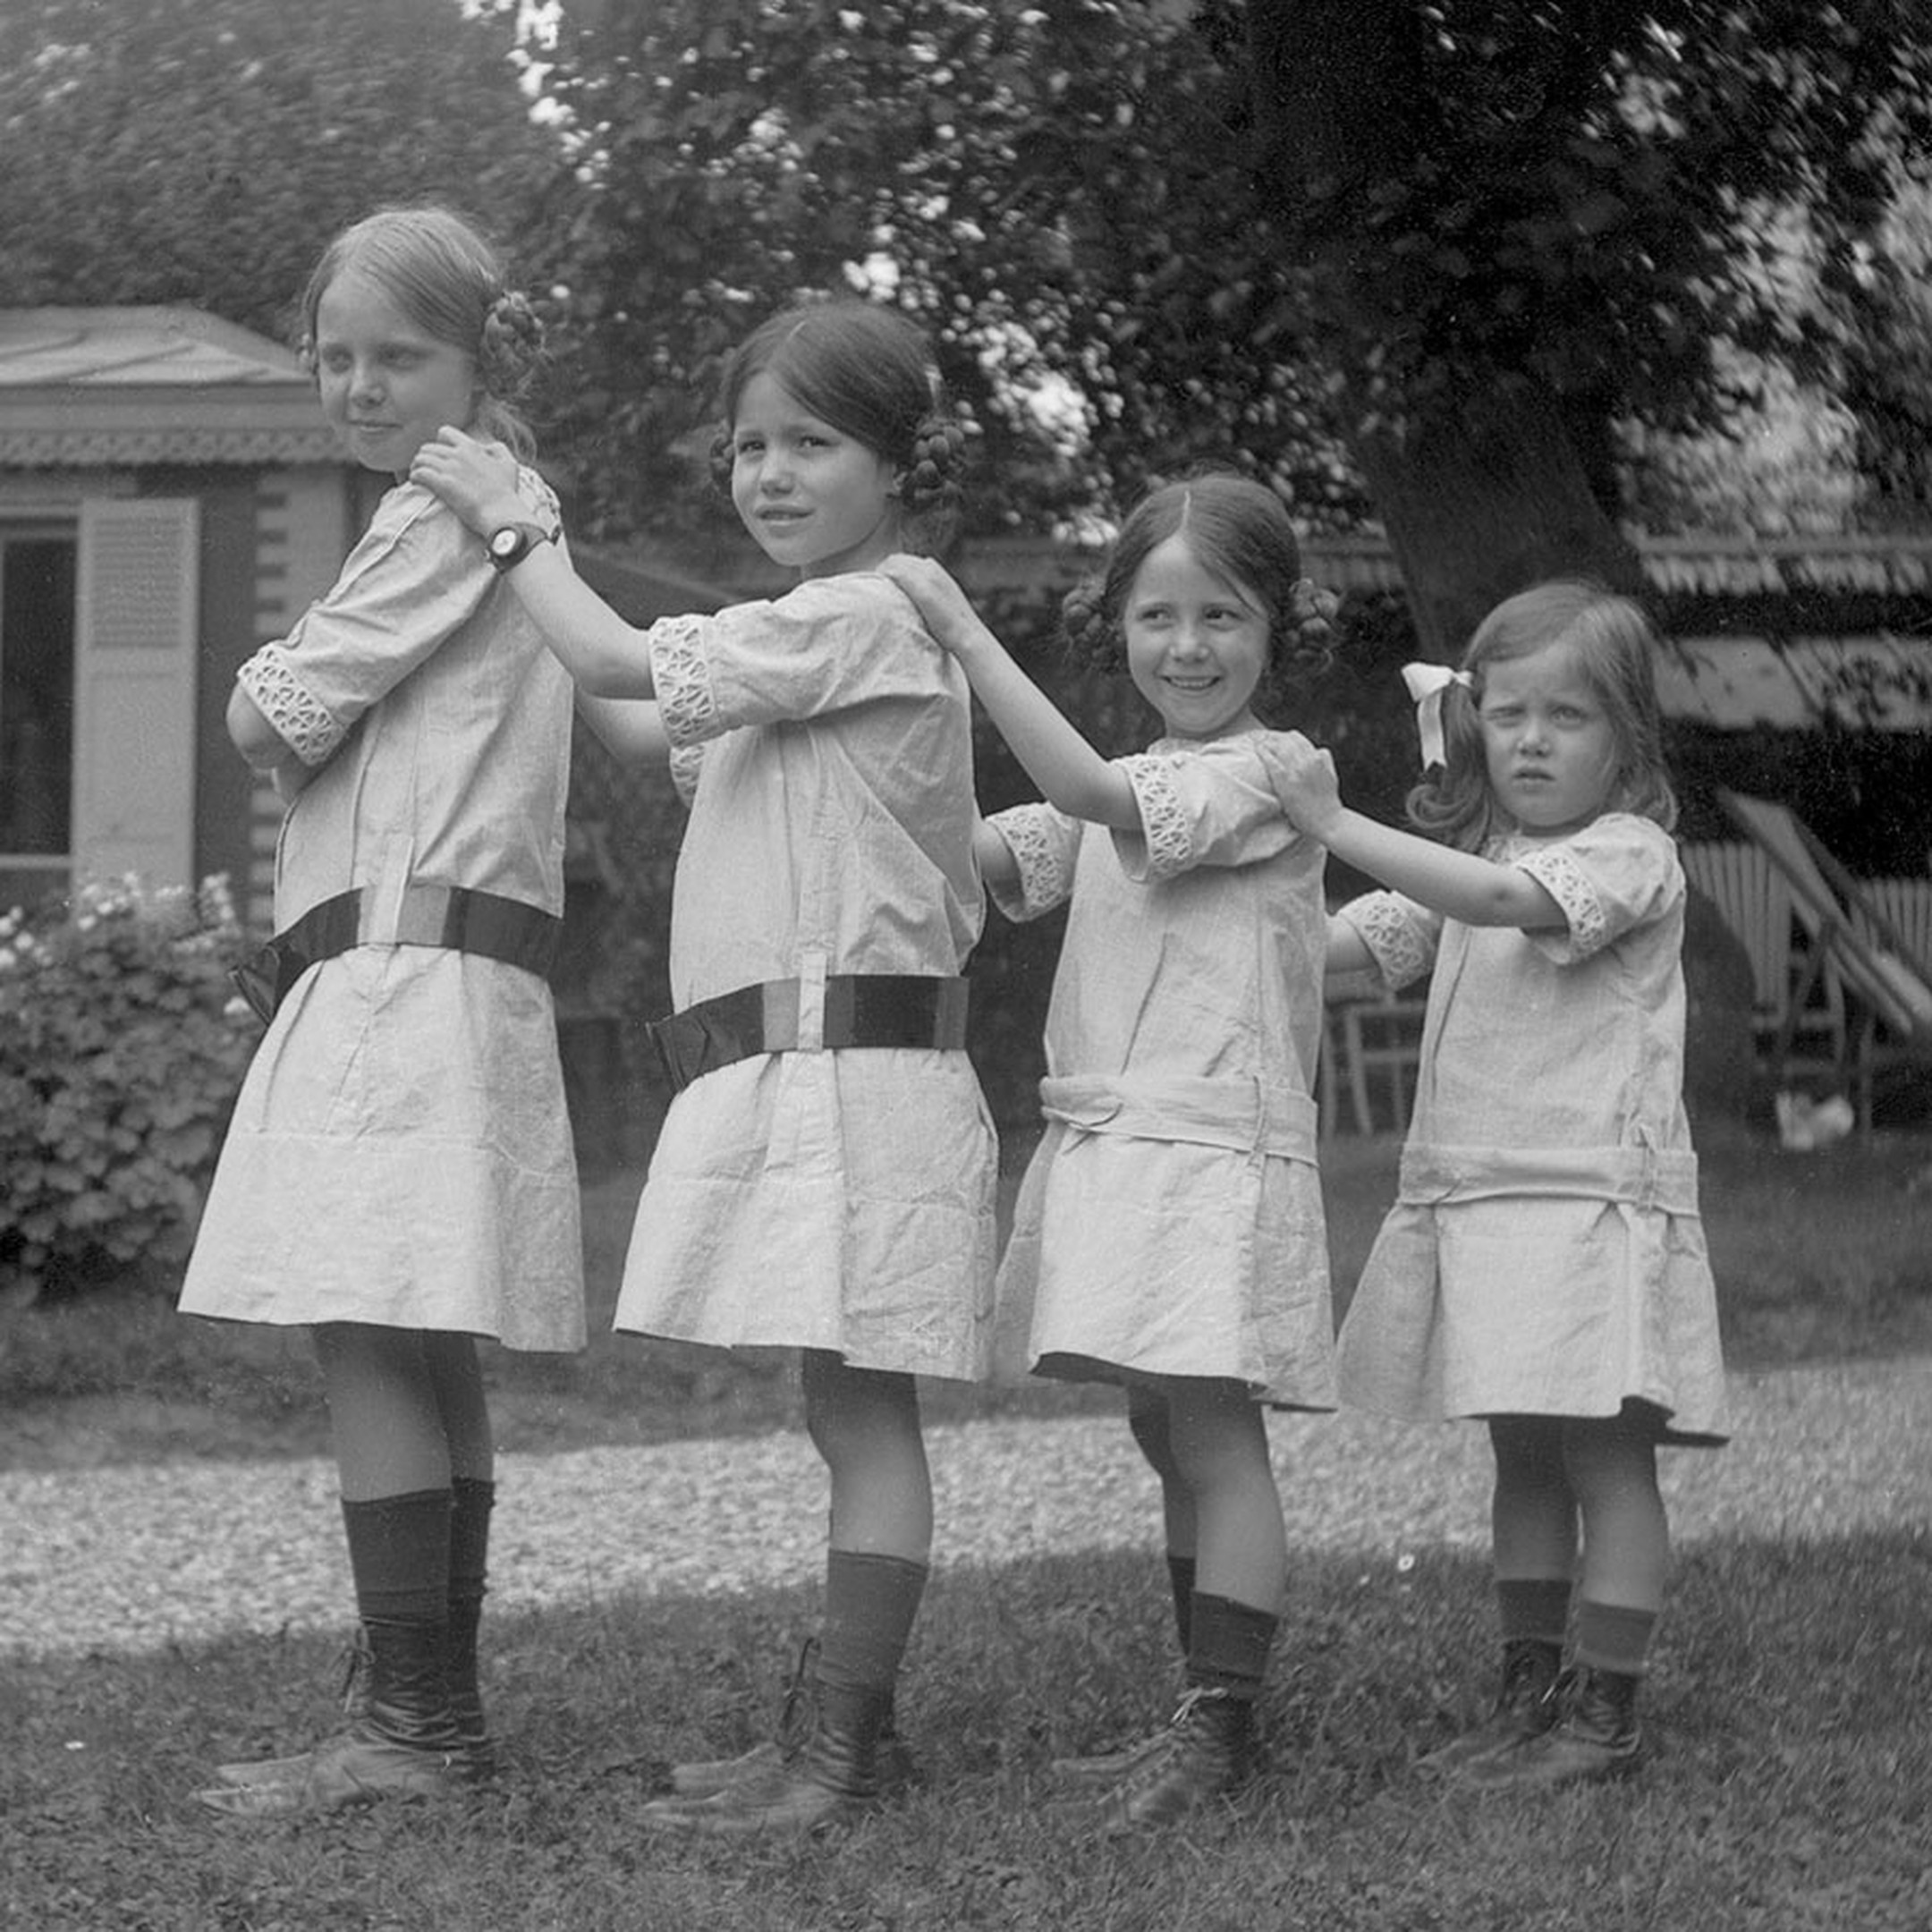 Yvonne, Jacqueline, Simone and Aline Herme`s from left to right, as children in 1912.